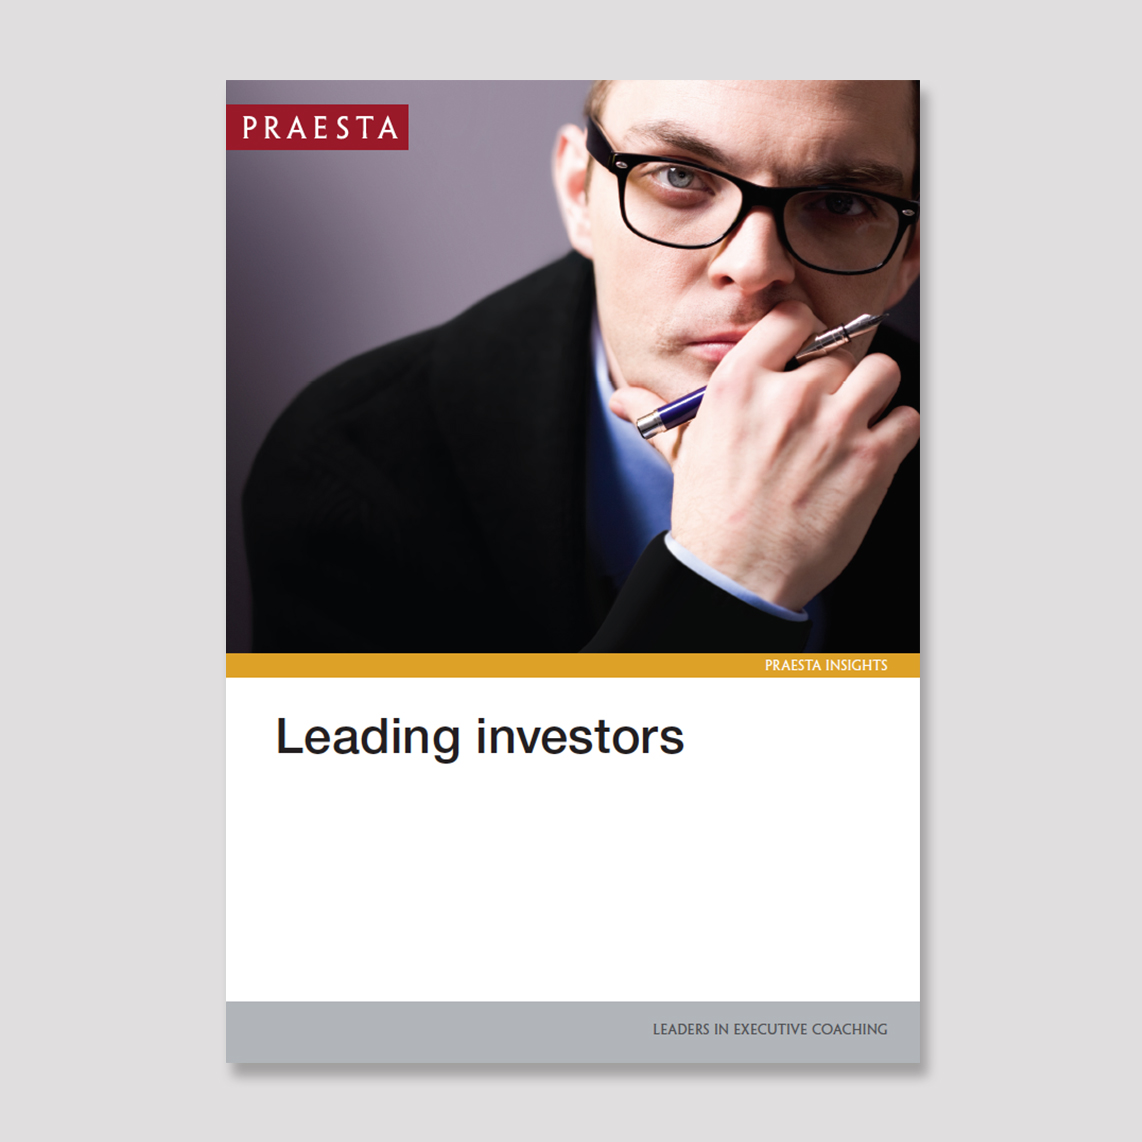 Leading Investors   Here you are, the new team leader, head of investment or CIO. You feel justly pleased by having been given the chance to show your skills at managing people as well as investing assets, and pleasure at being acknowledged by the company as a key member of the overall team. But now what?   Download PDF